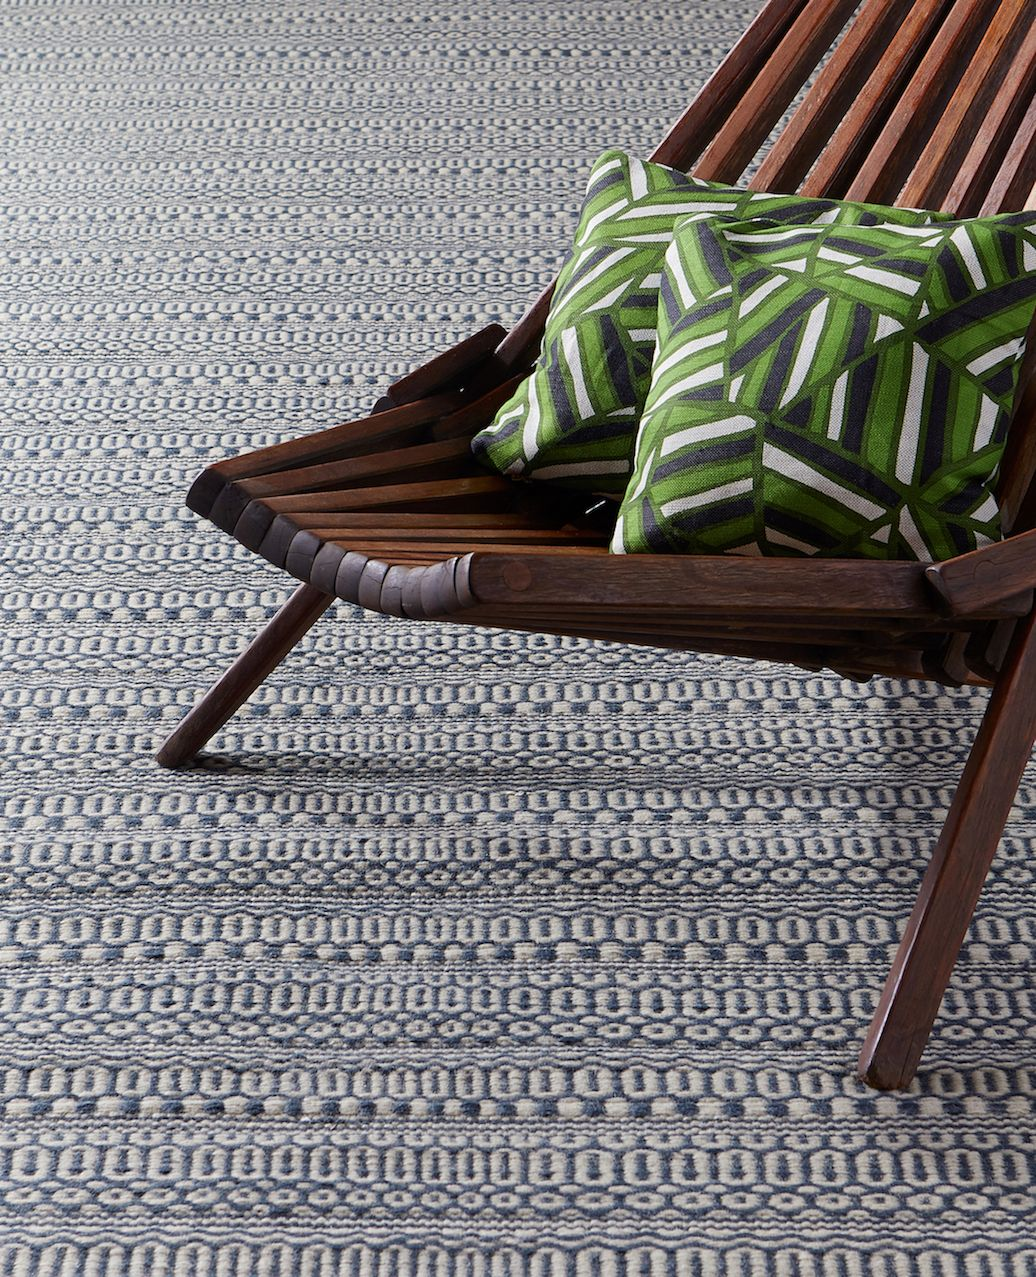 angela adams furniture. Angela Adams Furniture. Adams\\u0027 Inner Nature Rug Collection Celebrates Individuality And Authenticity Furniture E